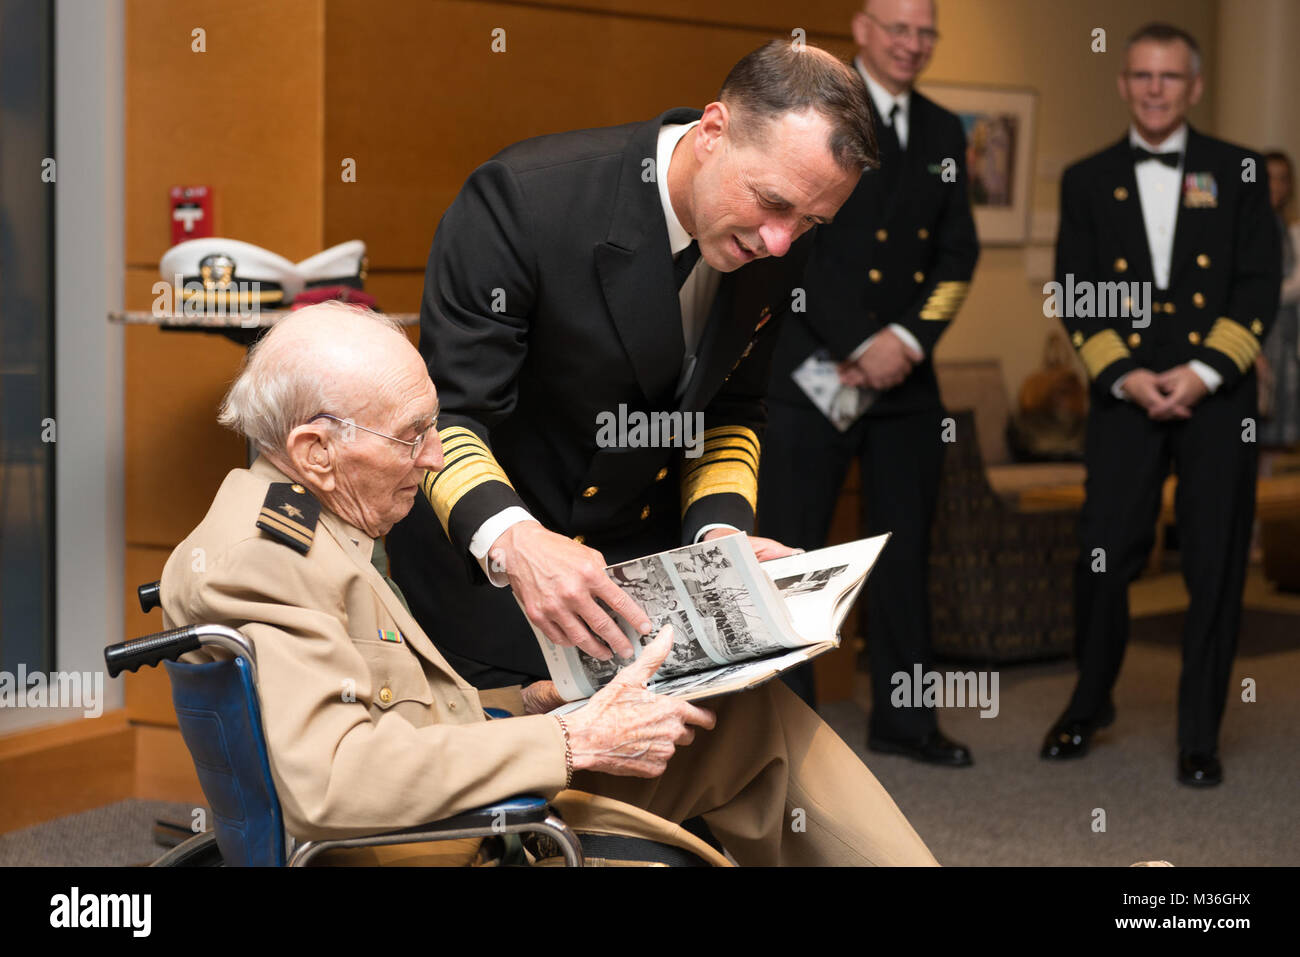 161005-N-DD694-444 BETHESDA, Md. (Oct. 5, 2016) Chief of Naval Operations Admiral John Richardson presents a cruise book to World War II veteran Norton Hurd after the Navy Birthday Concert.  The Navy Band was celebrating the Navy's 241st birthday. (U.S. Navy photo by PO1 Jonathan Barnes/Released) 161005-N-DD694-444 by United States Navy Band Stock Photo